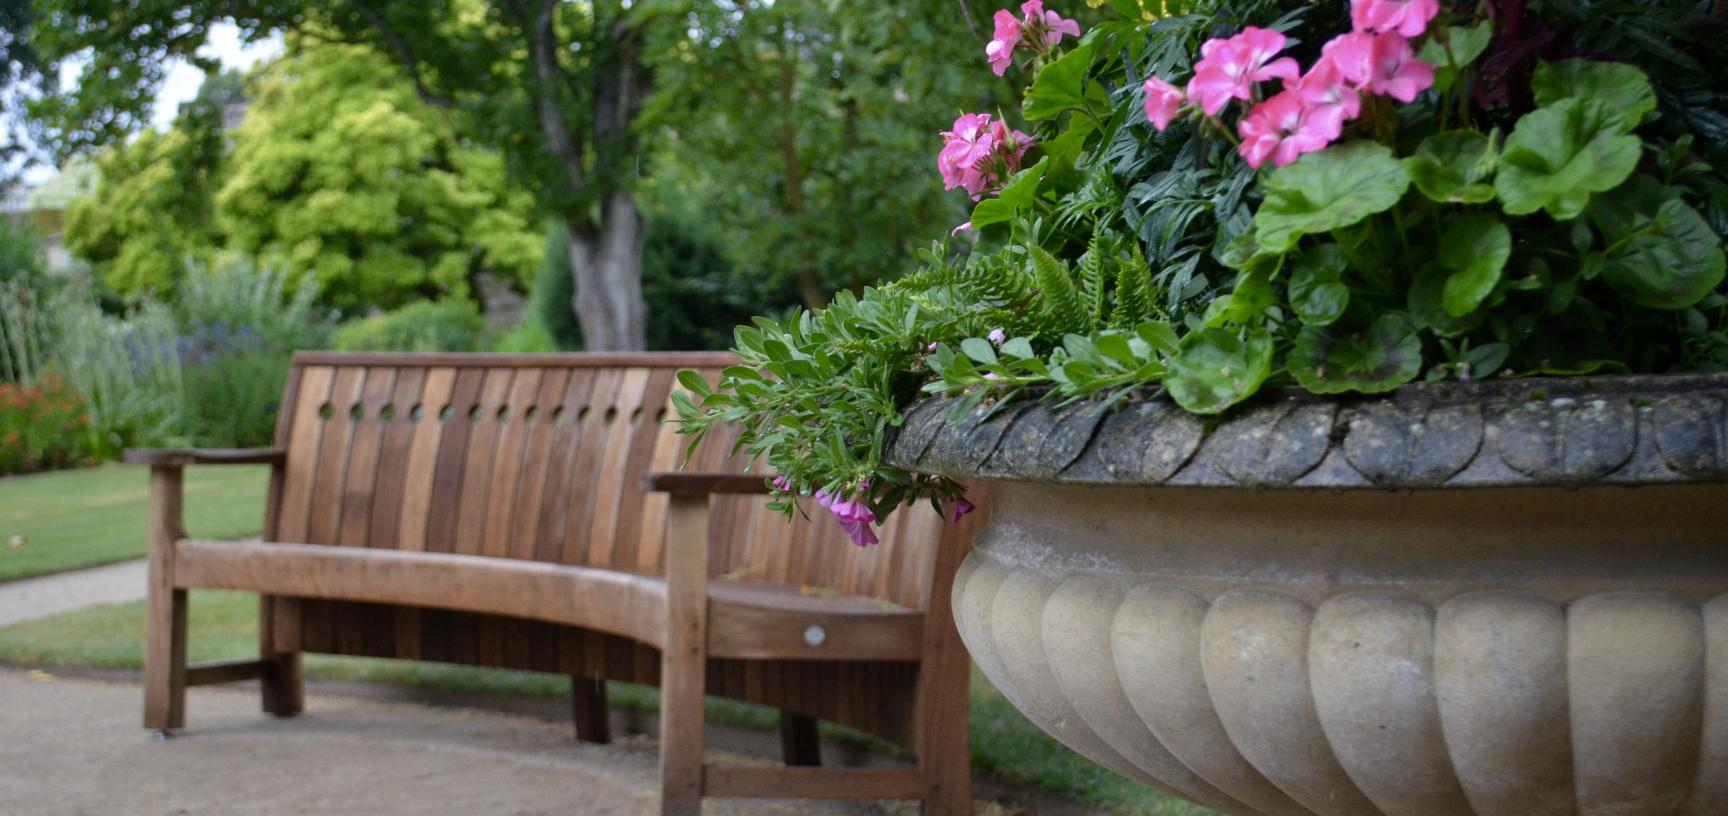 Decorative Pot and Bench